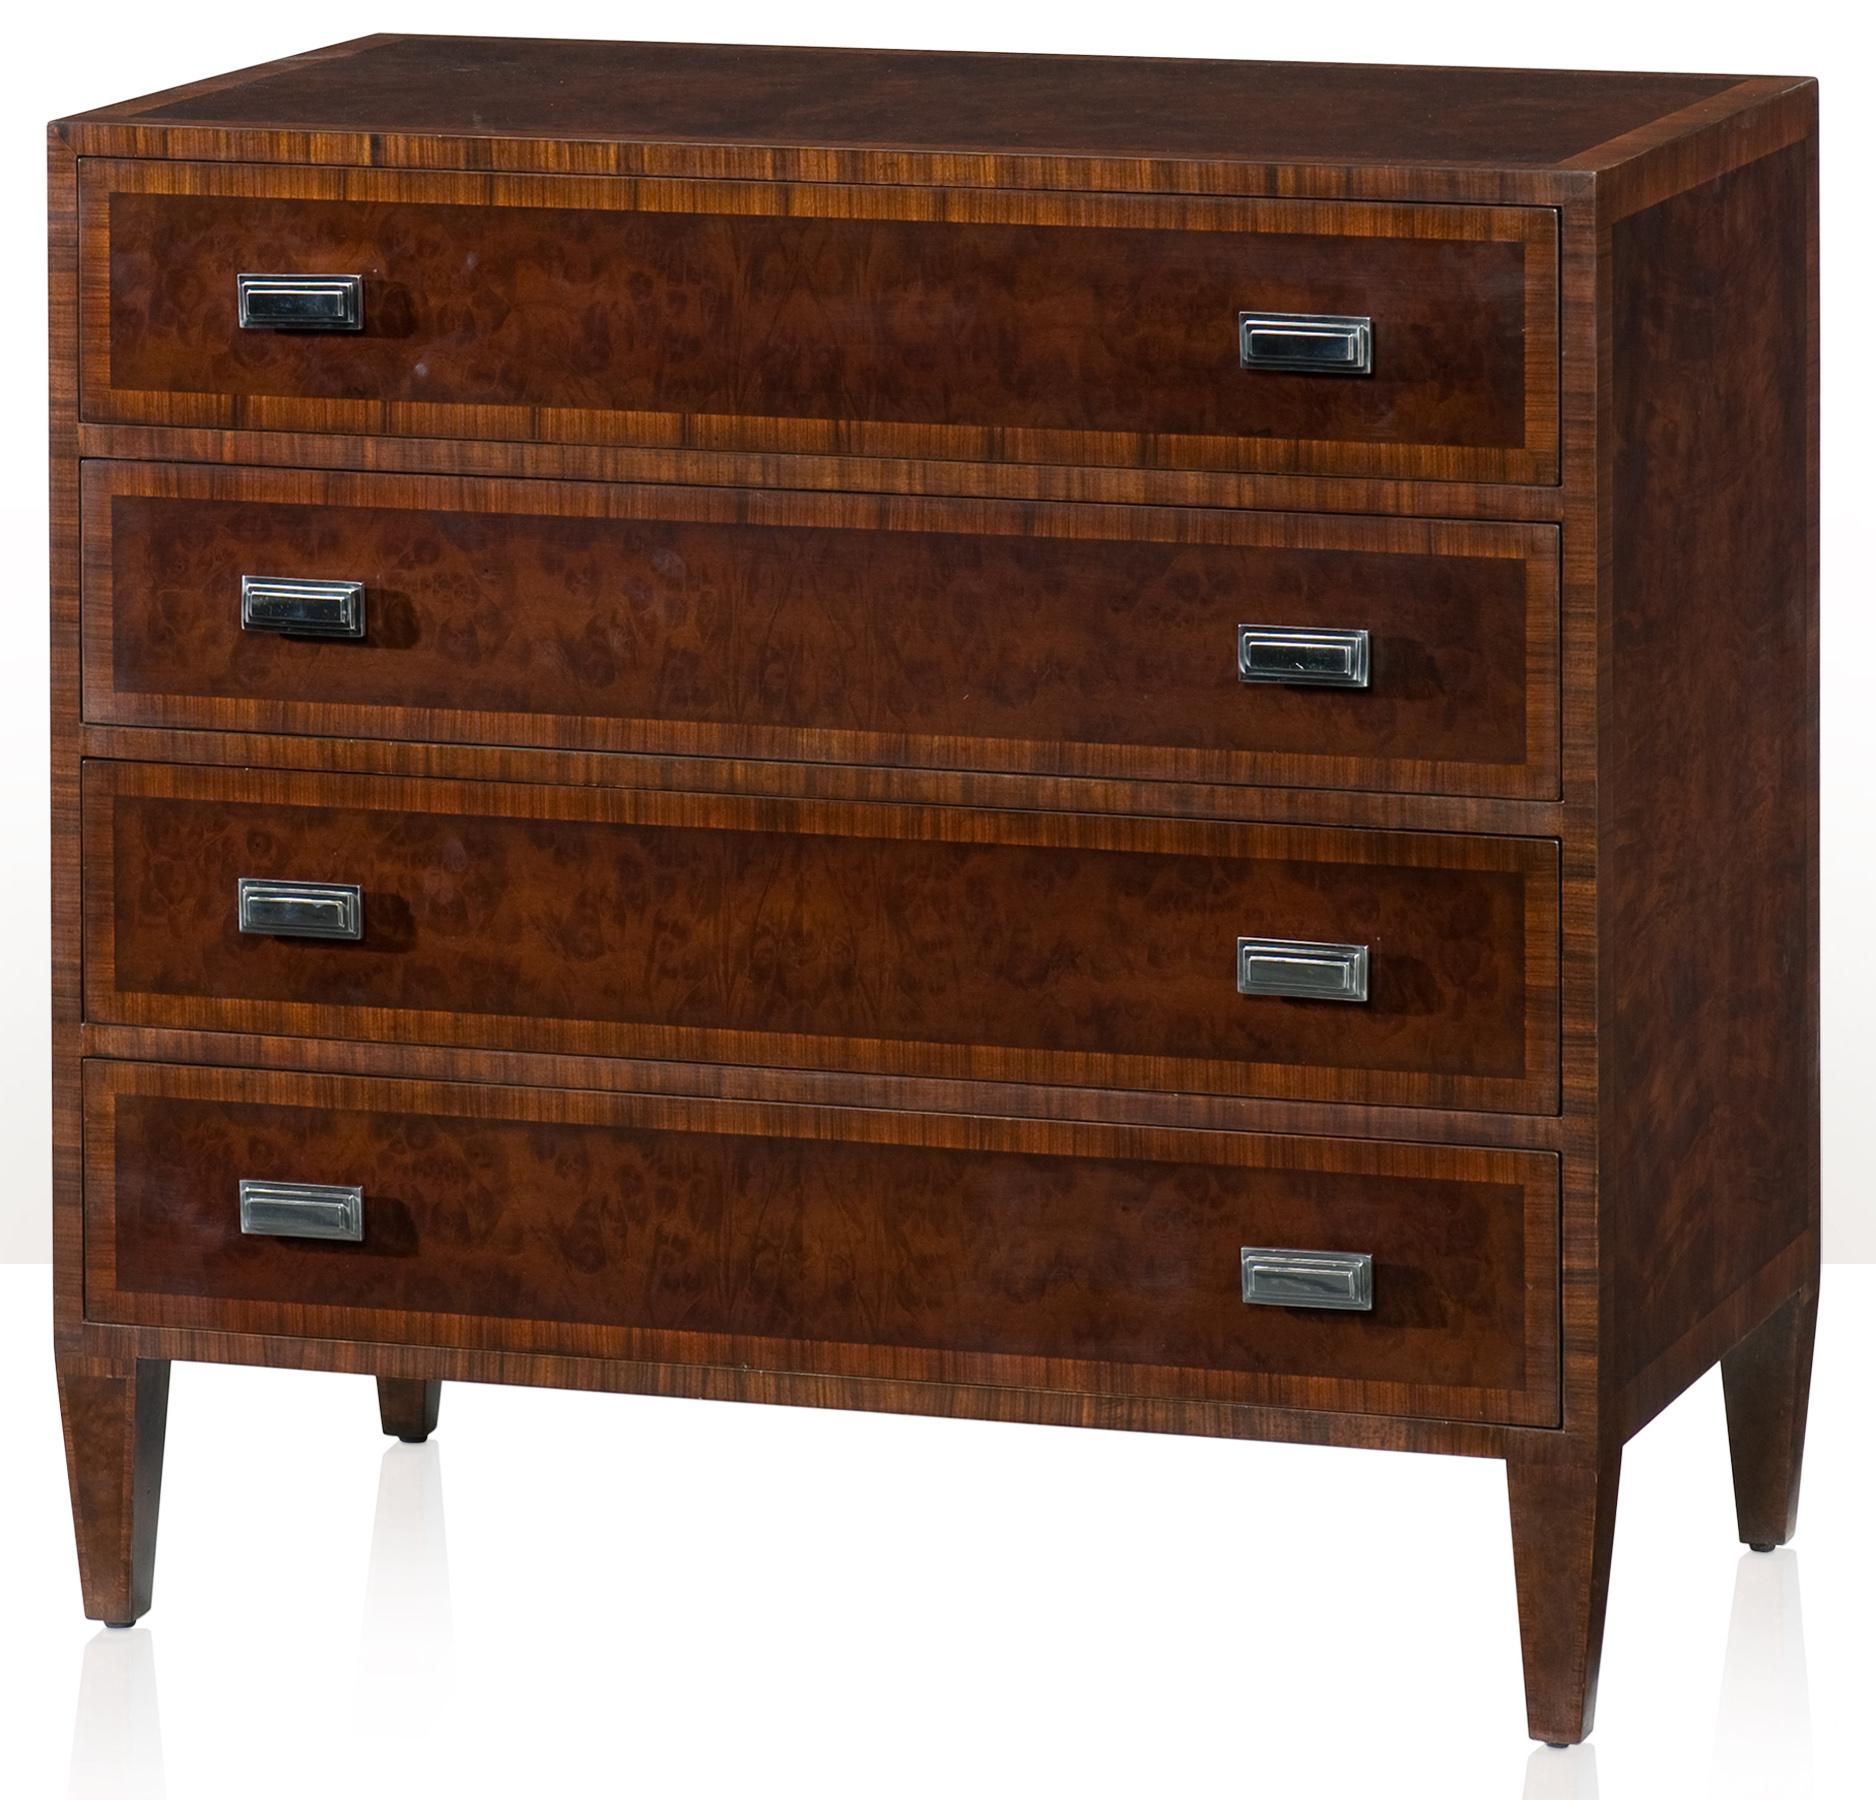 Vanucci Eclectics Chest of Drawers by Theodore Alexander at Baer's Furniture